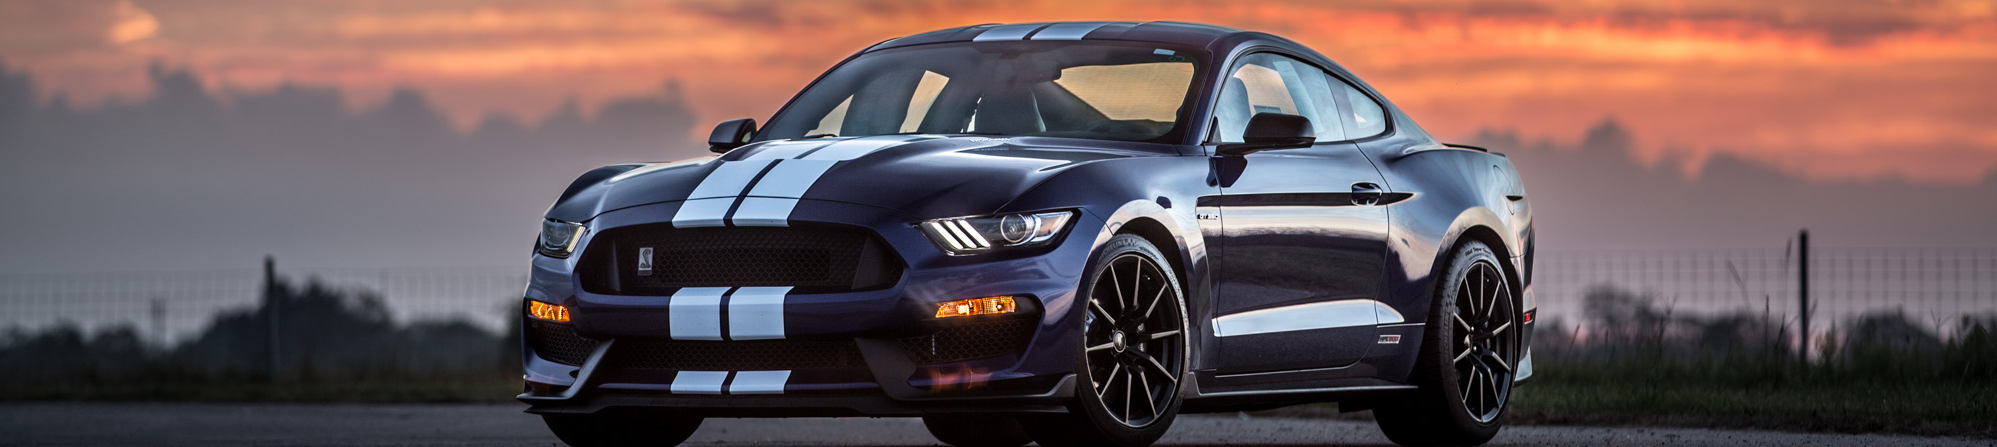 Aftermarket tuning house Hennessey has released a supercharged performance upgrade for the Shelby Mustang GT350 and GT350R that increases power production by almost 300 hp. The Hennessey HPE800 maintains the standard 5.2-liter V8 engine found in the Shelby GT 350 with a new performance output of 808 hp and 657 lb-ft of torque. Production of the Hennessey HPE800 Shelby Mustang GT350 will be limited to just 50 examples made by the end of the year.